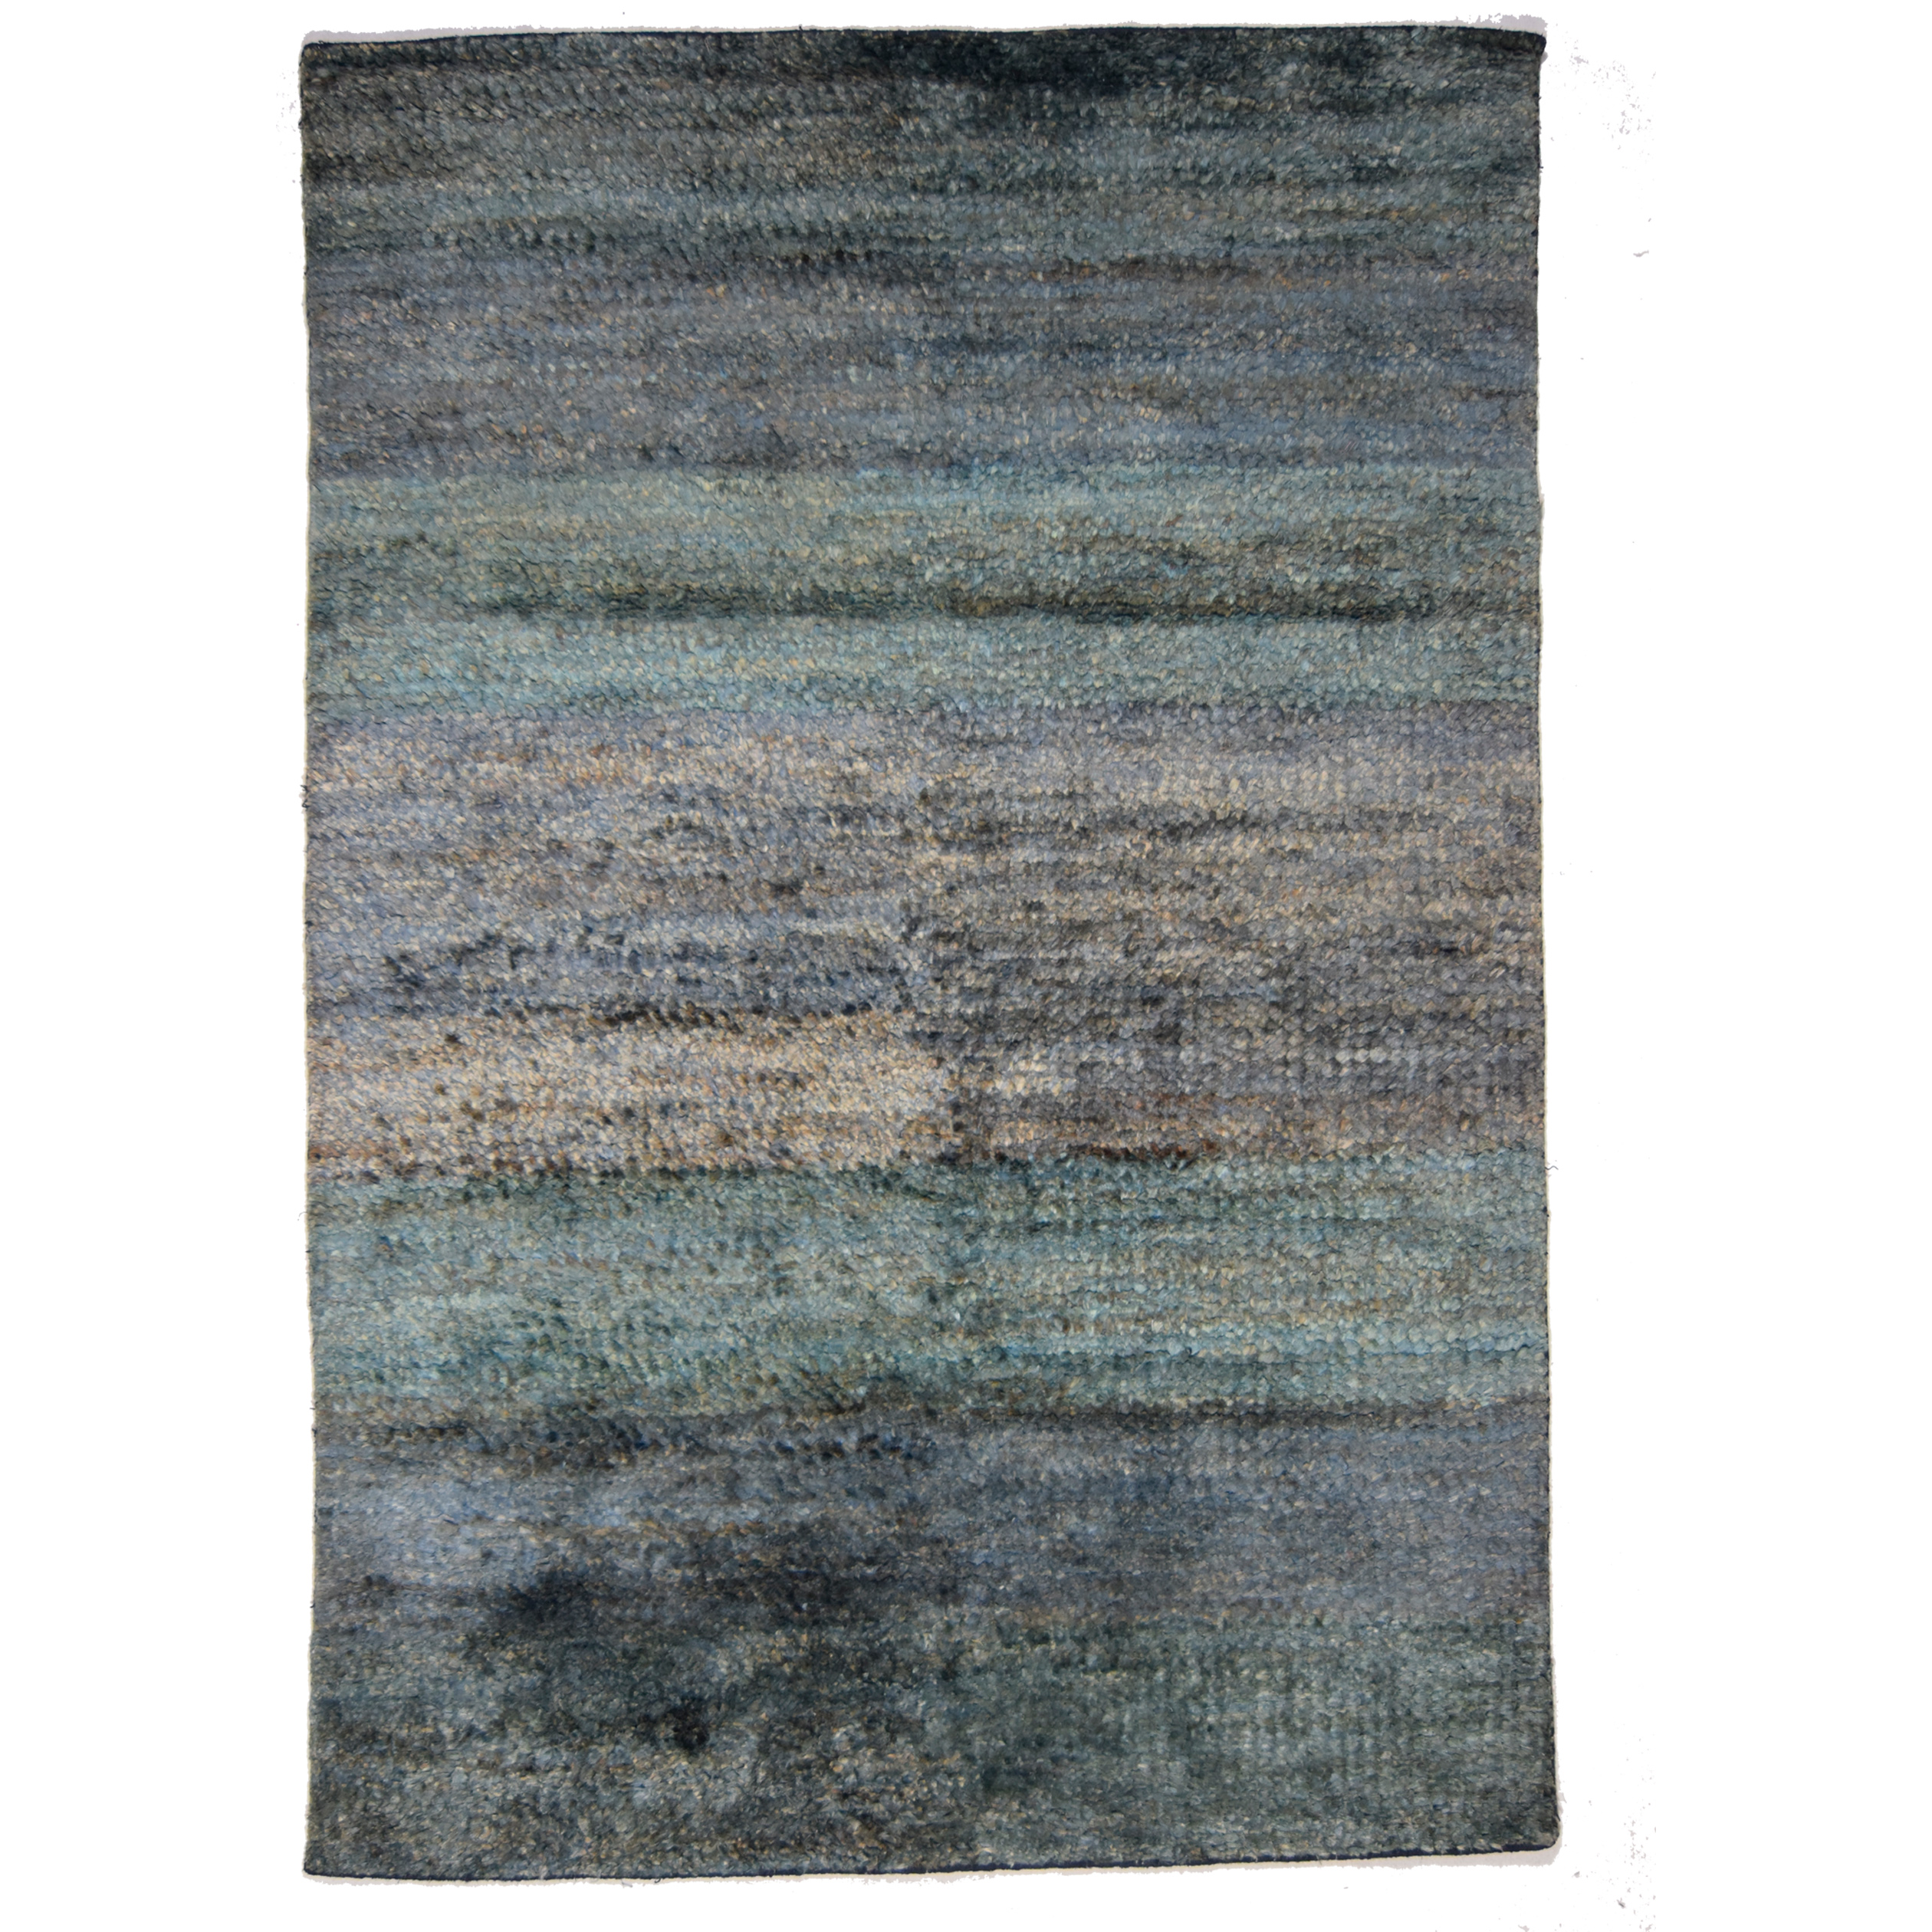 Handloom Carpet 203x150cm Indian Woollen Carpets